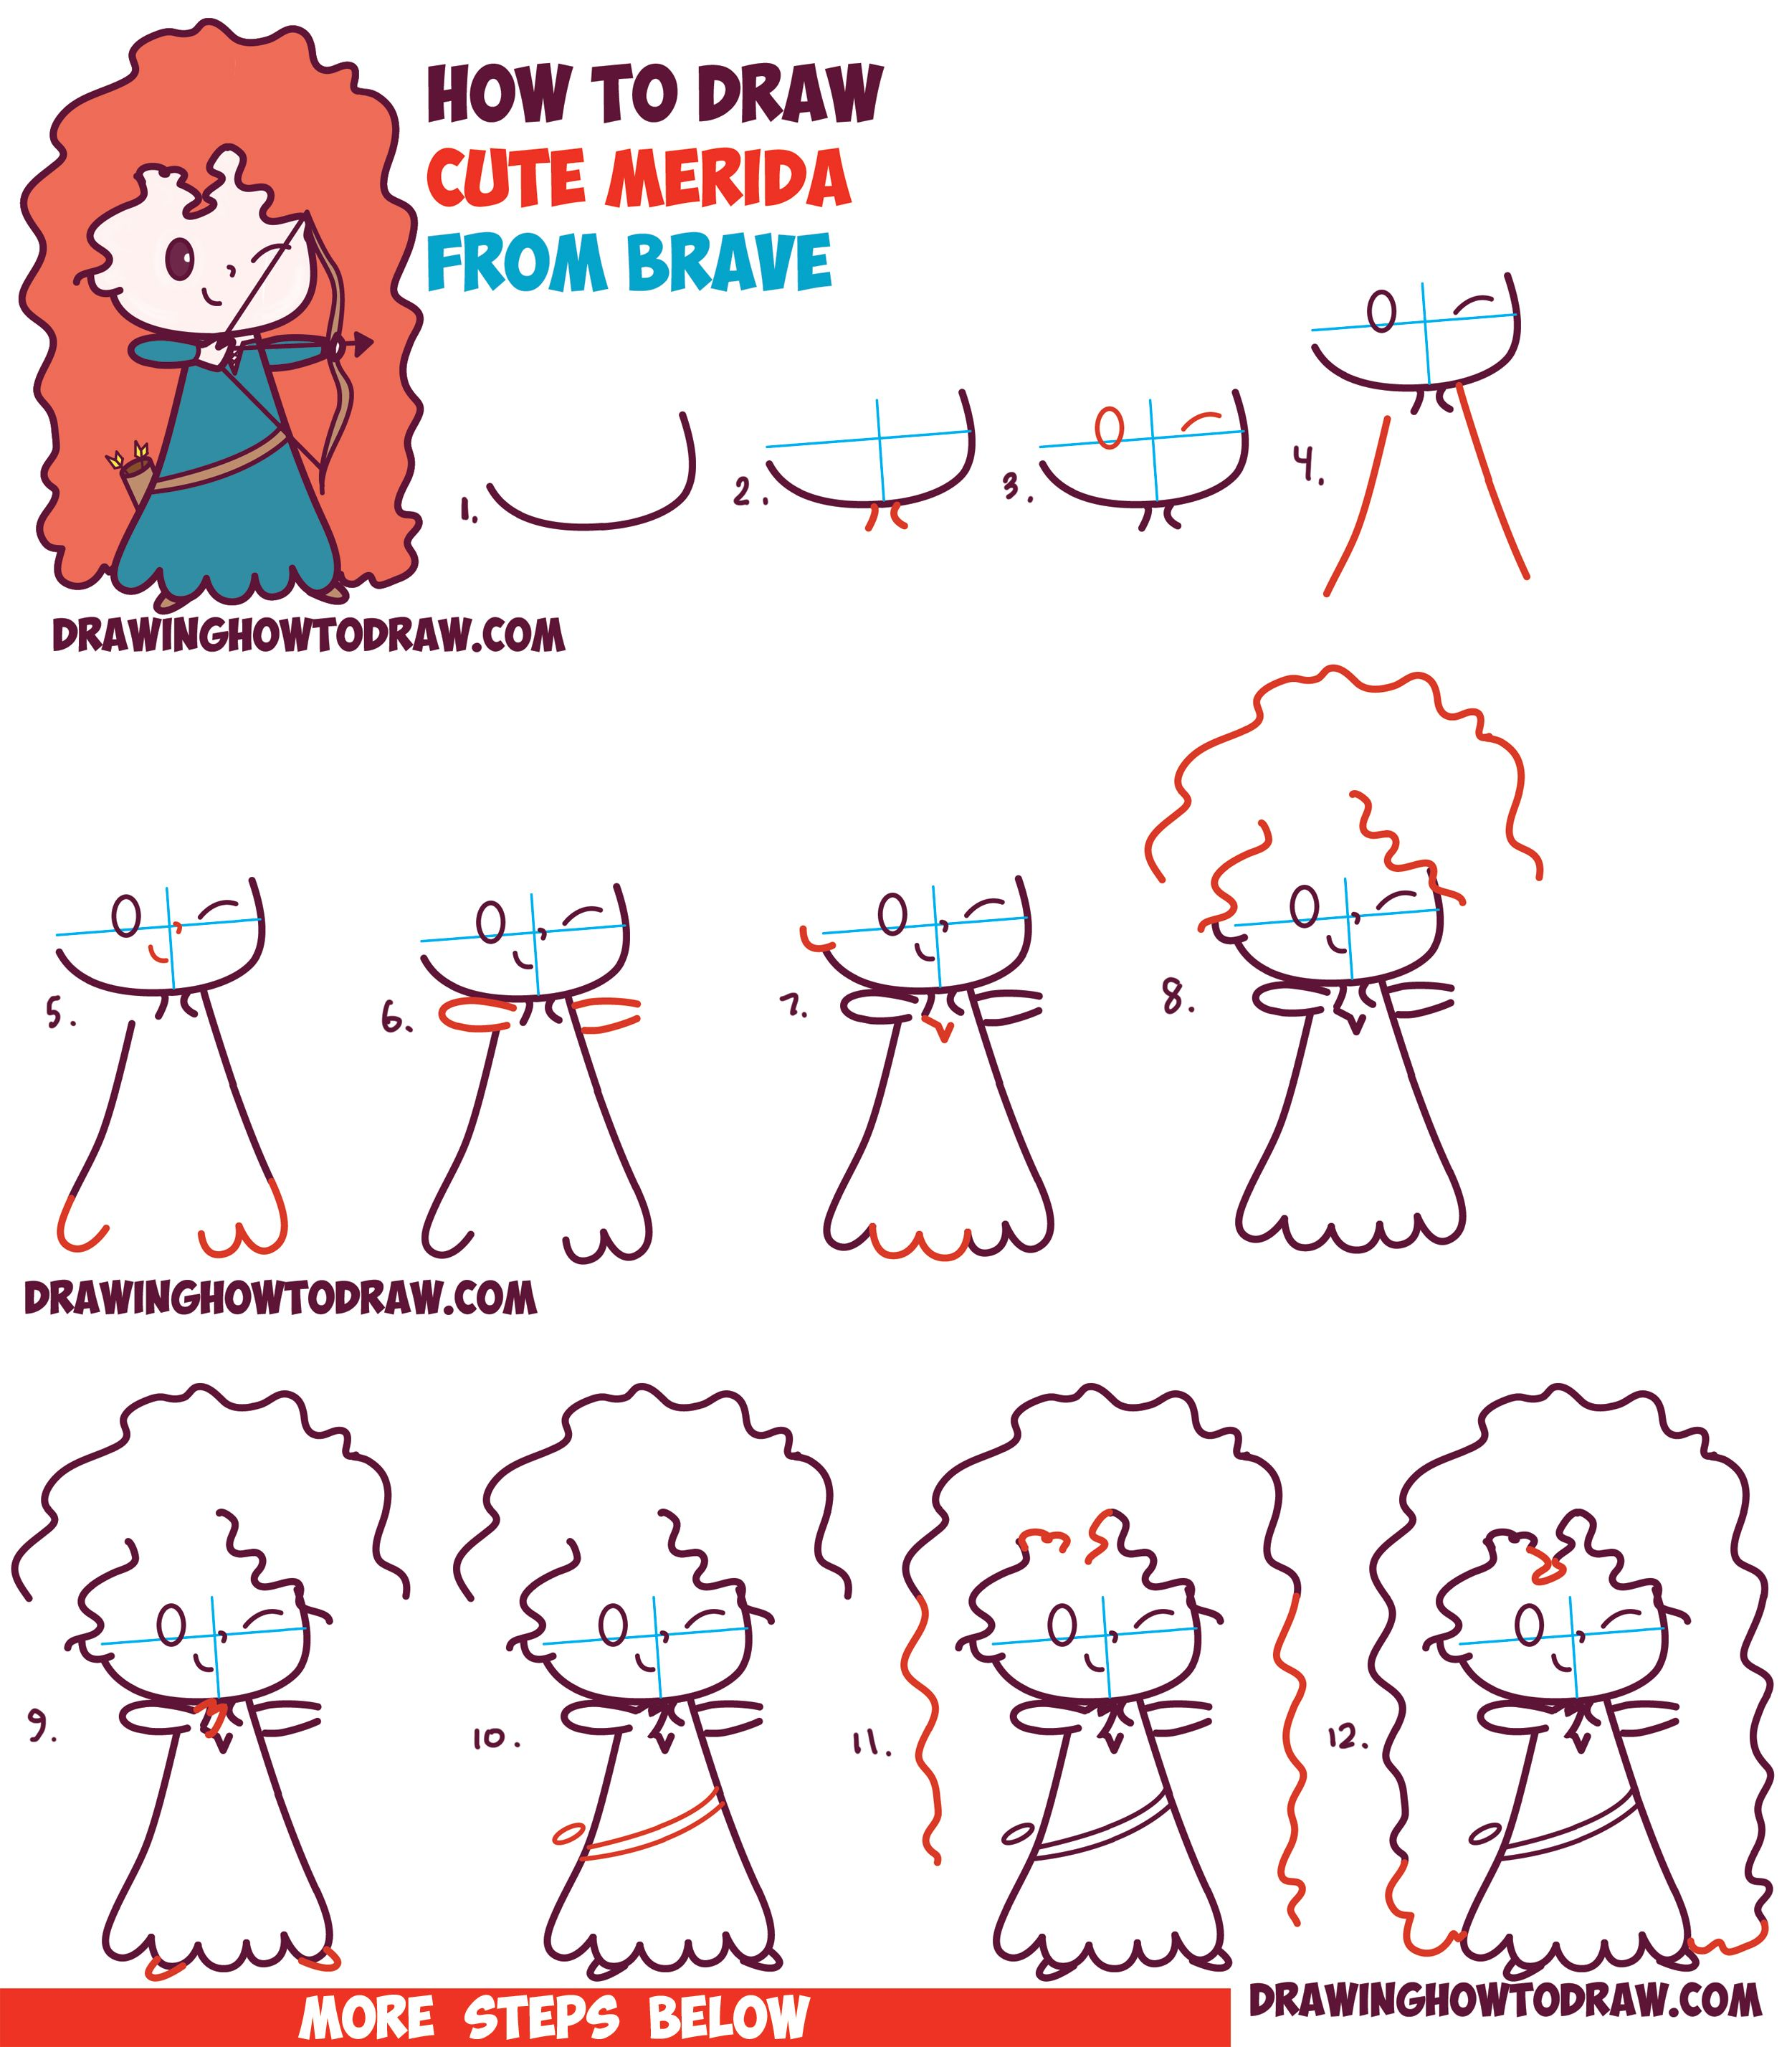 How To Draw Cute Kawaii Chibi Merida From Disney Pixar S Brave In